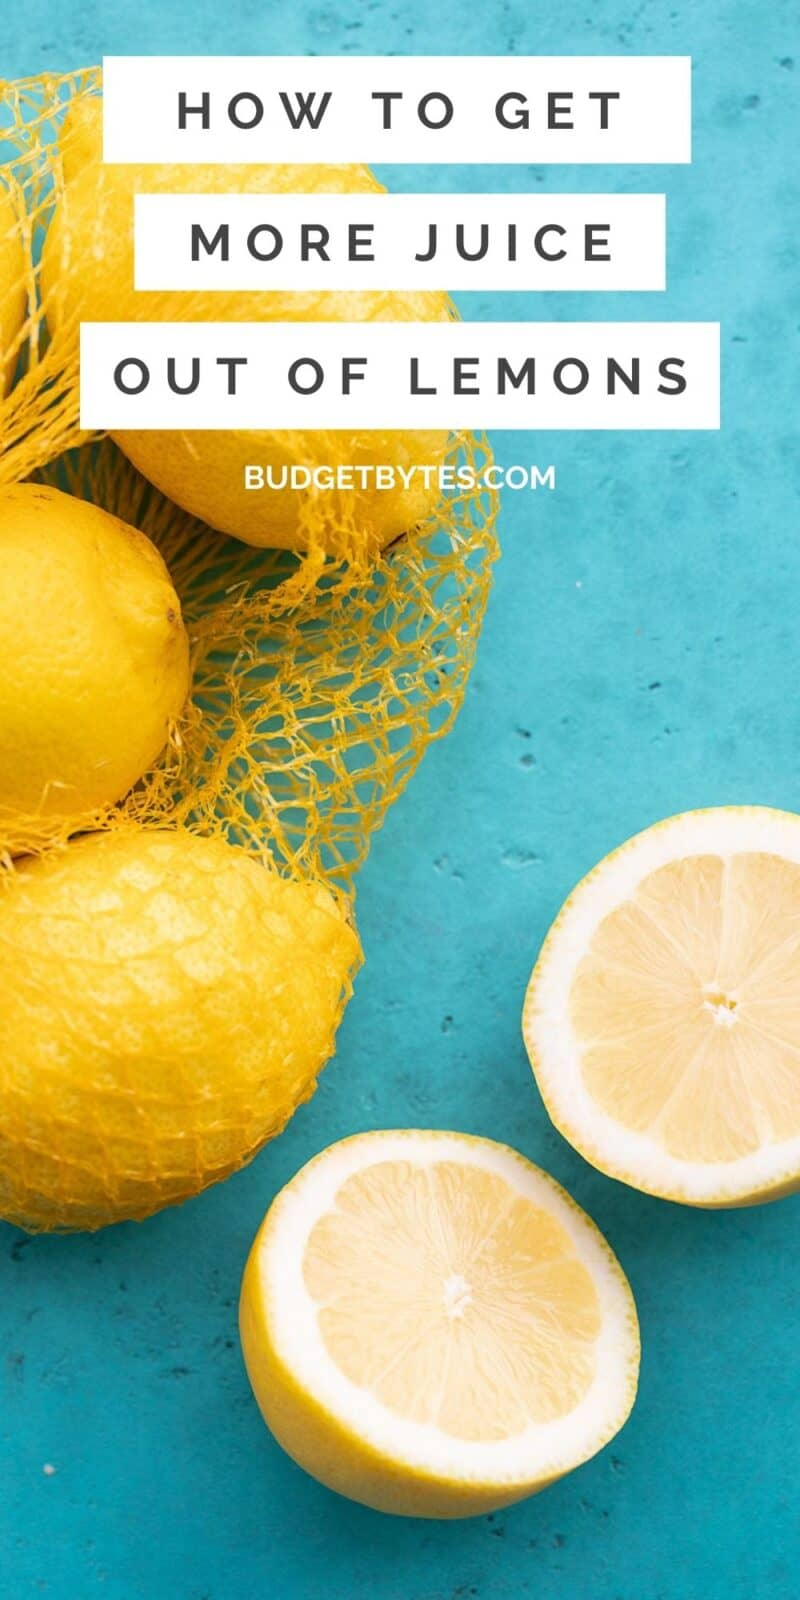 Fresh lemons on a blue background, title text at the top